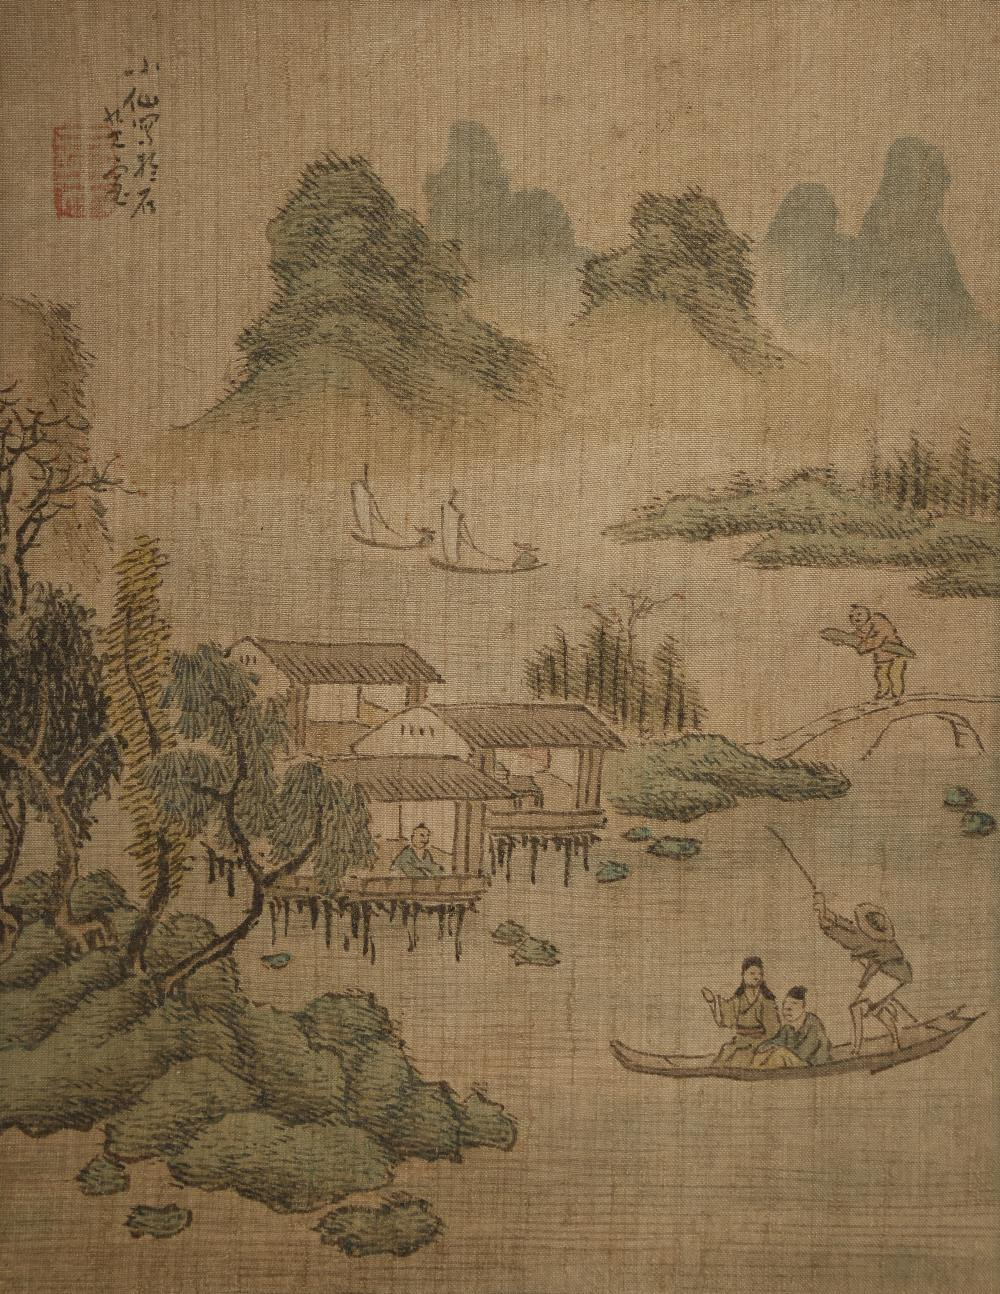 FEI CHENGWU (20TH CENTURY) SPARROW A Chinese painting, ink and colour on paper, signed Chengwu, with - Image 6 of 10